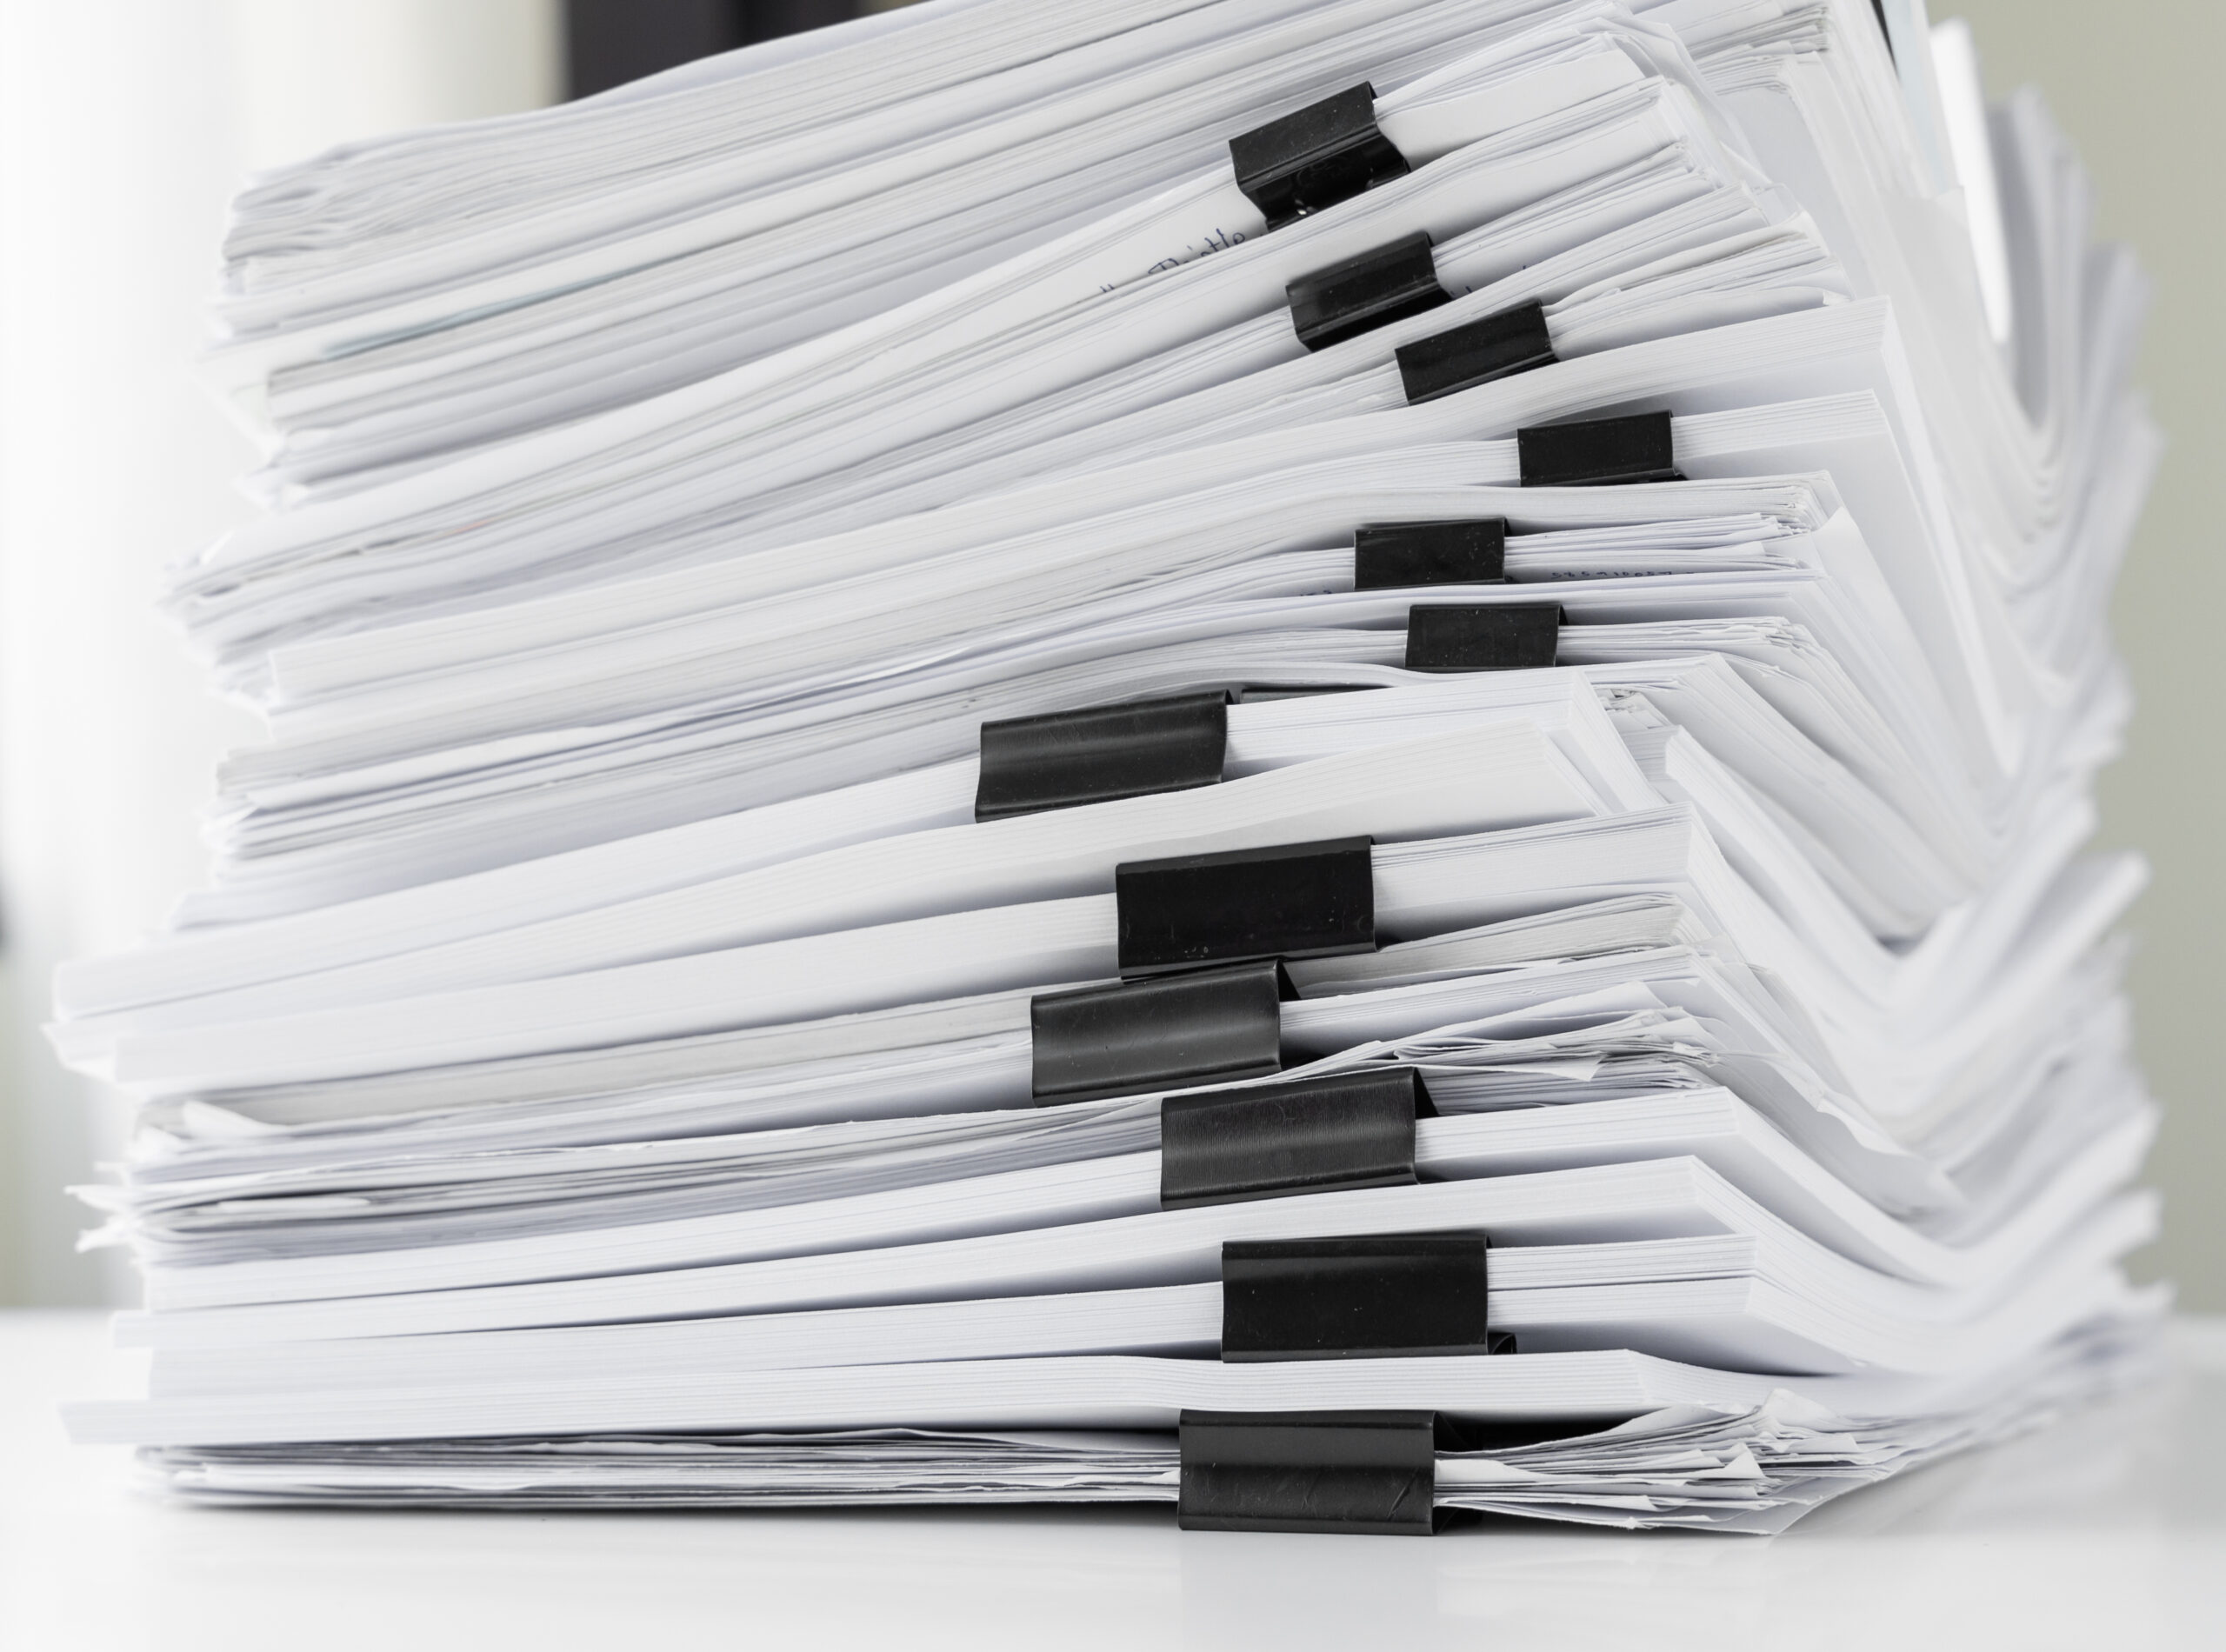 Piles of white papers work large piles of papers stacked together. On the desk in the office with black clip. Documents that are not finished. Business concept.